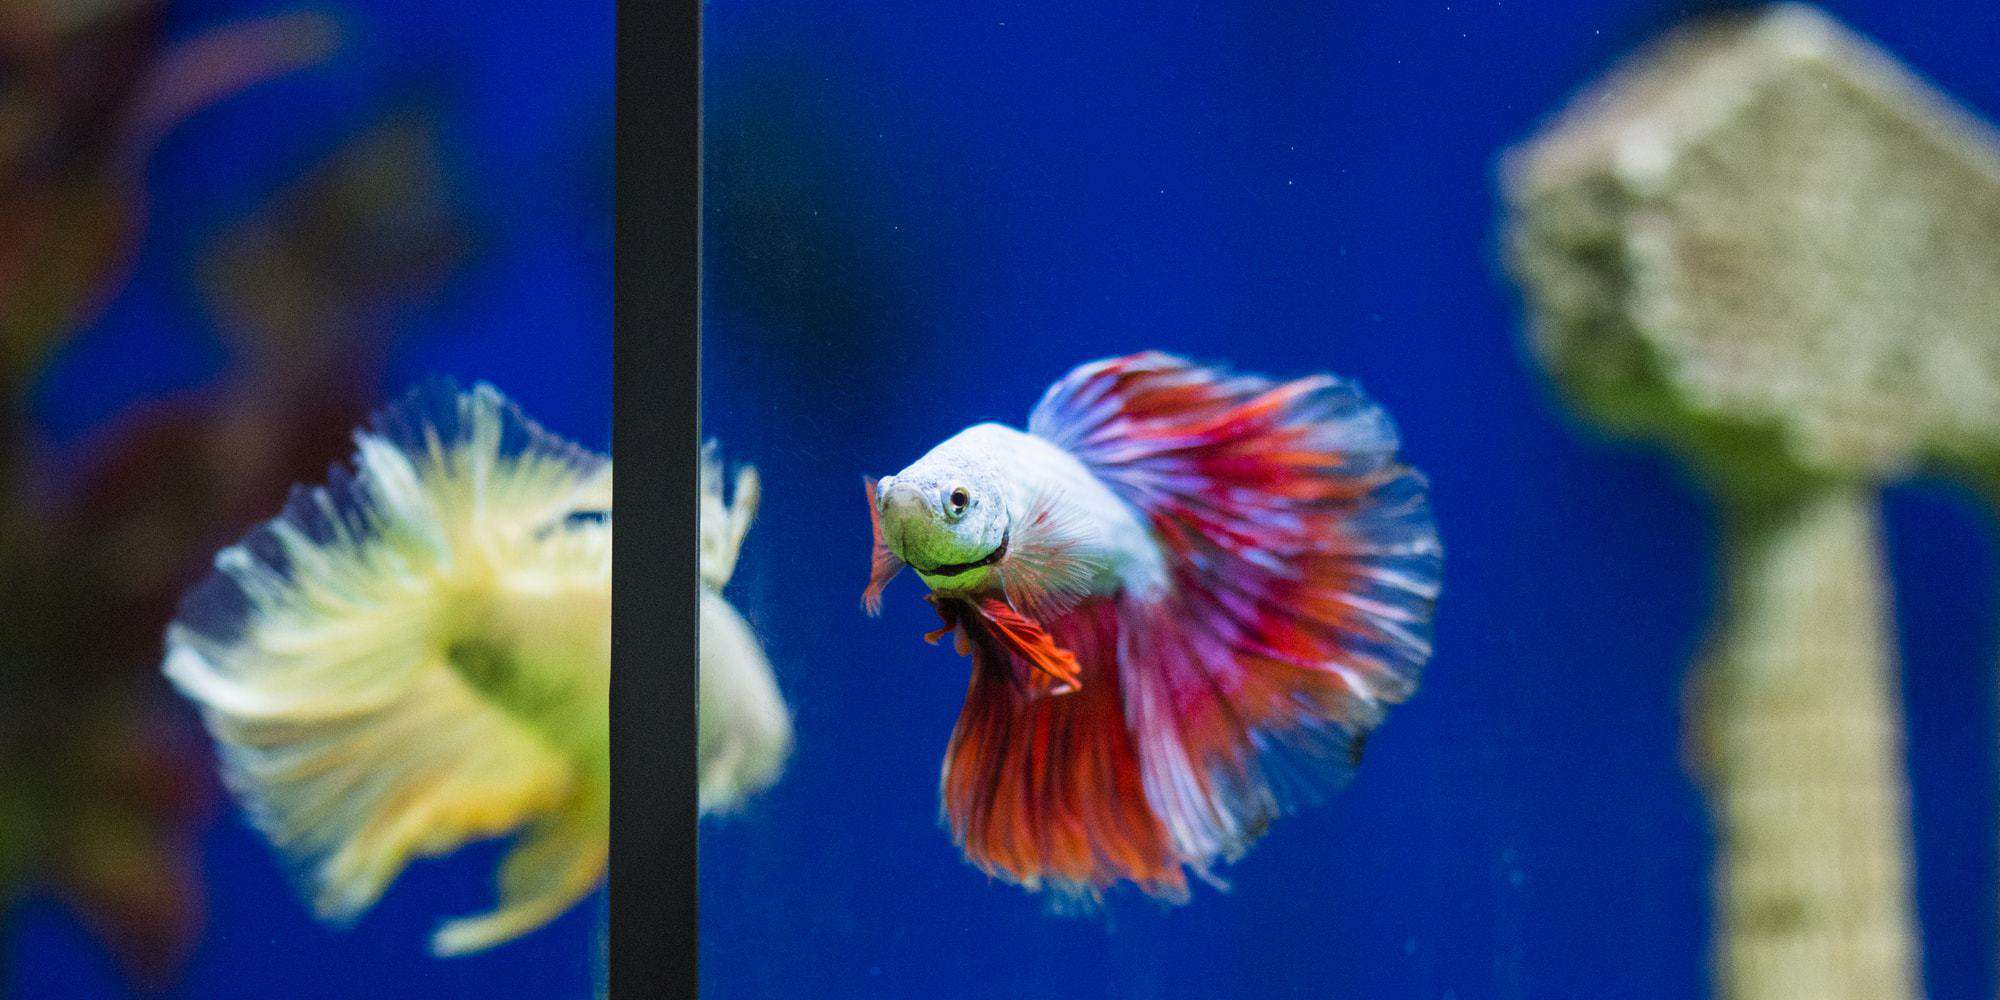 Betta flashing while leaning on wall